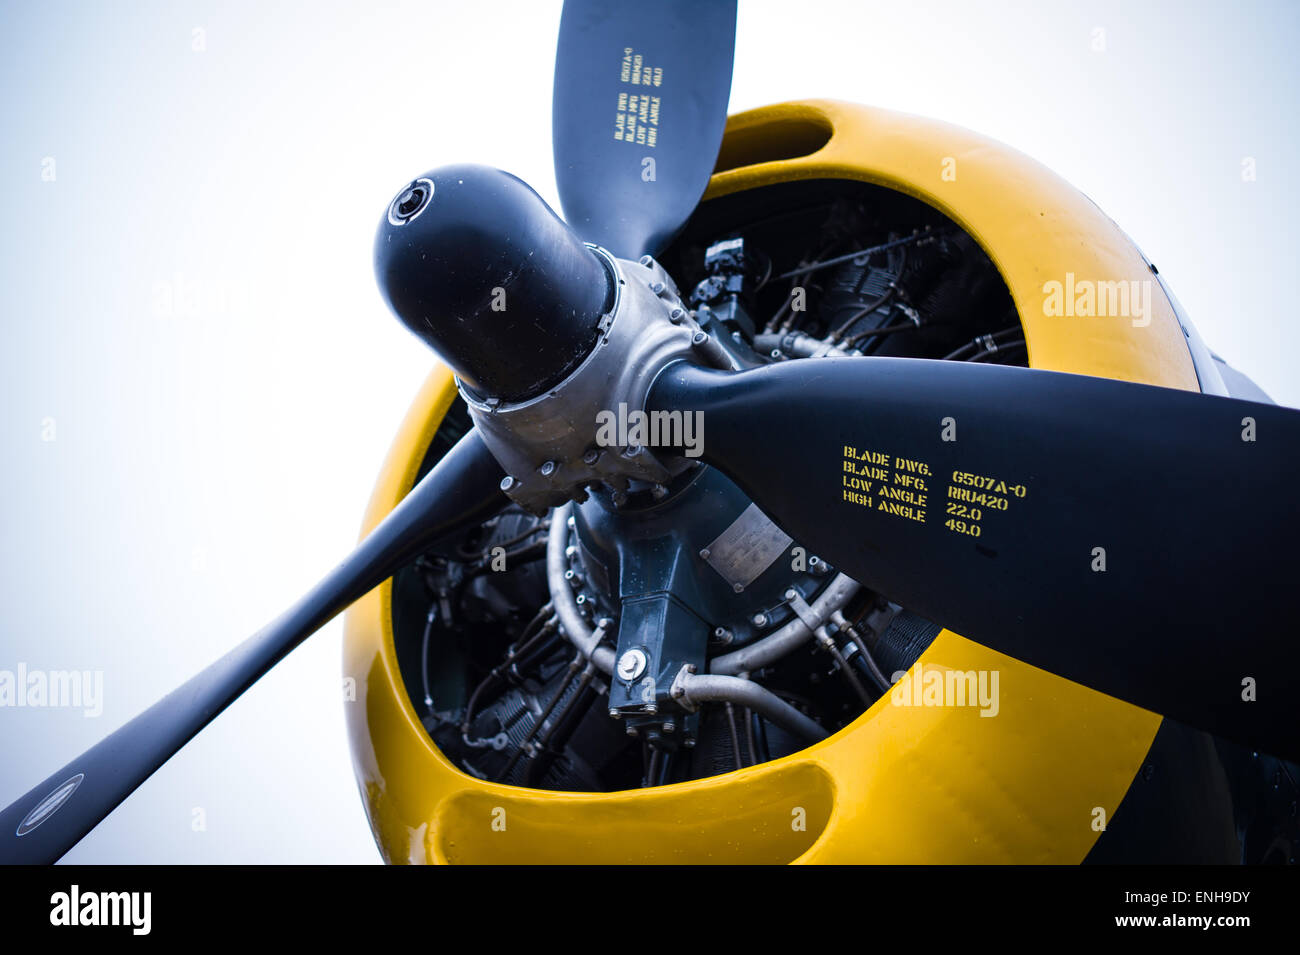 Piston Engine Stock Photos & Piston Engine Stock Images - Alamy